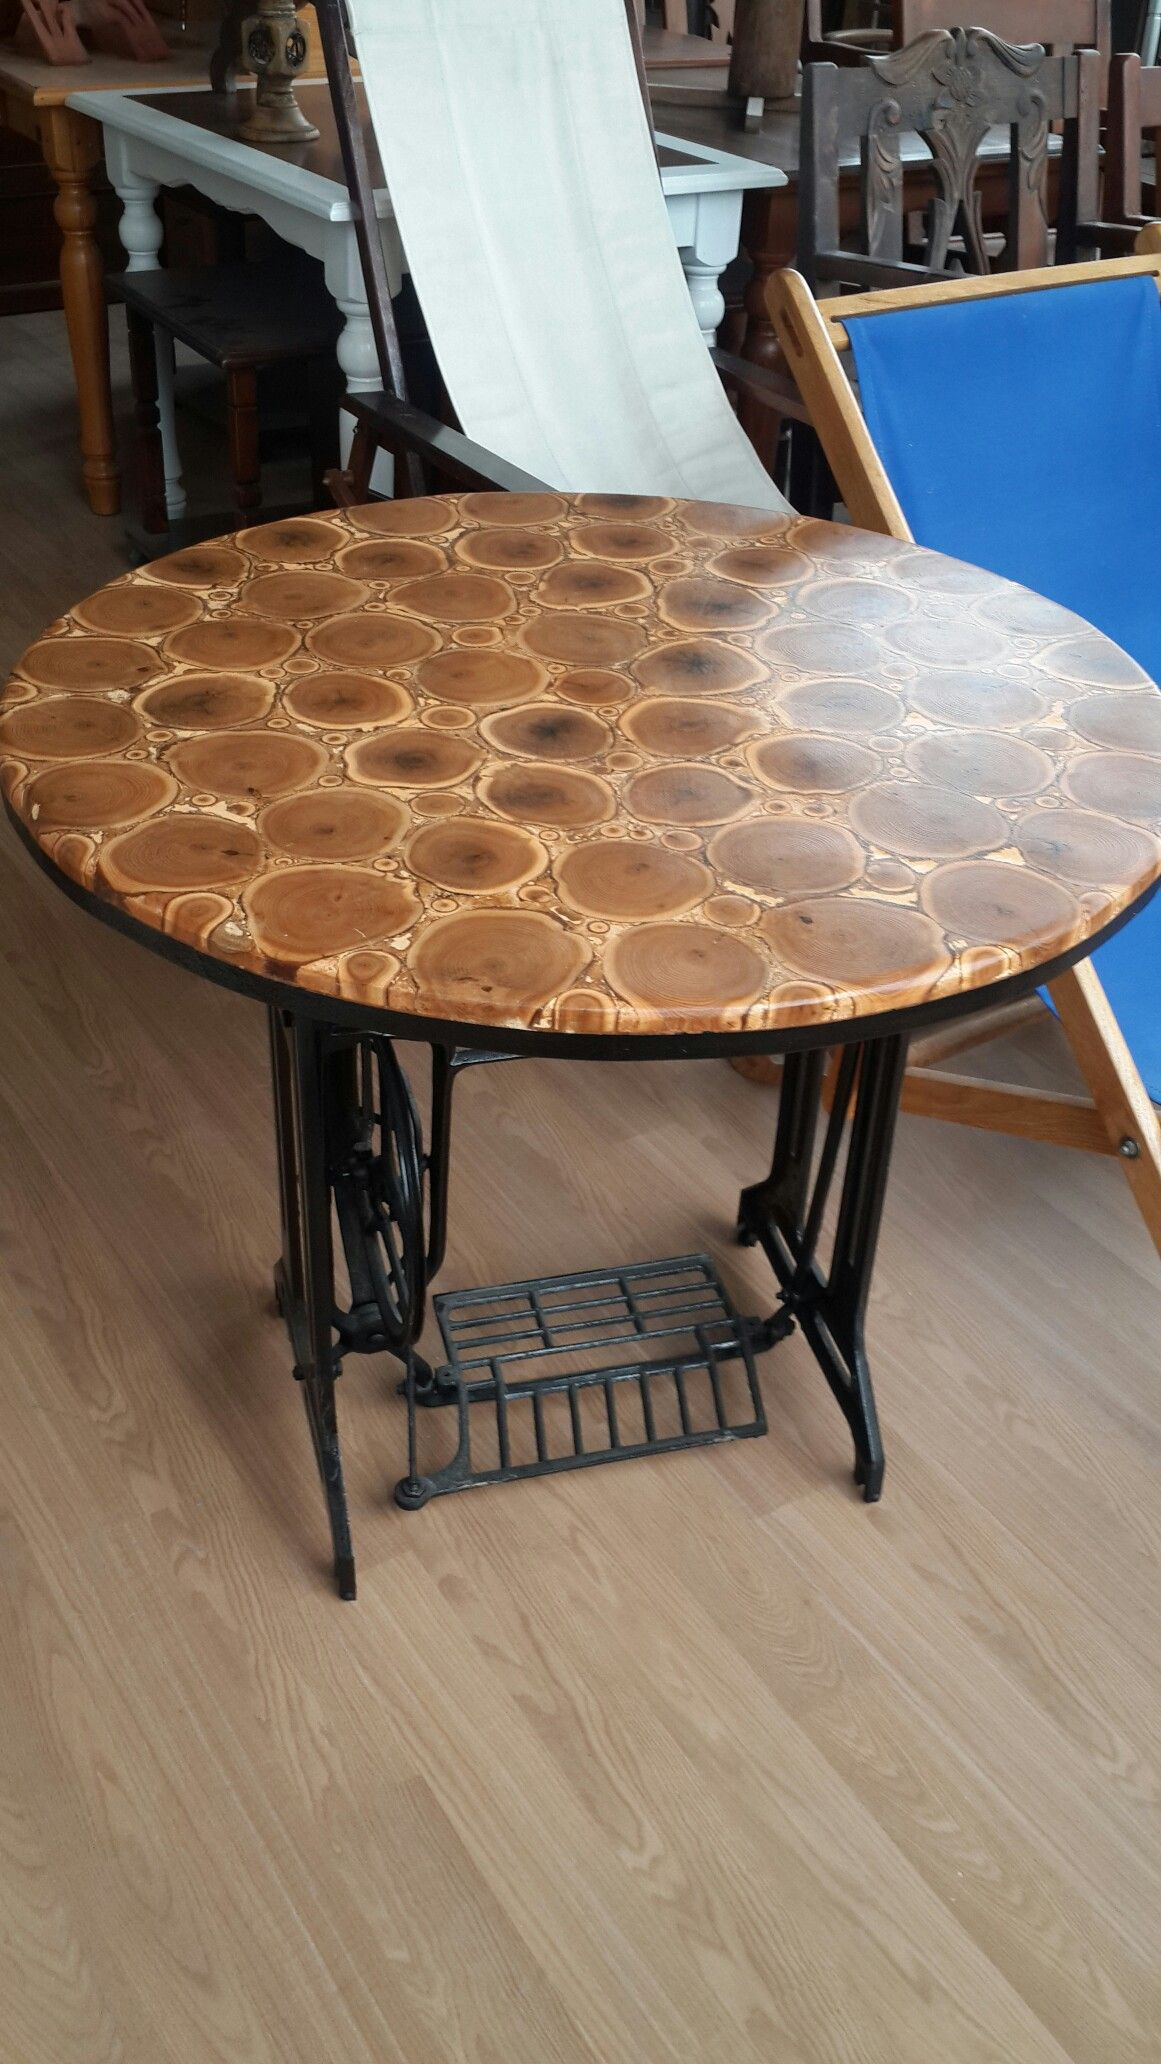 Hollow Trunk As A Coffe Table  Coffe Table Woods And Organic Enchanting Tree Trunk Dining Room Table Inspiration Design